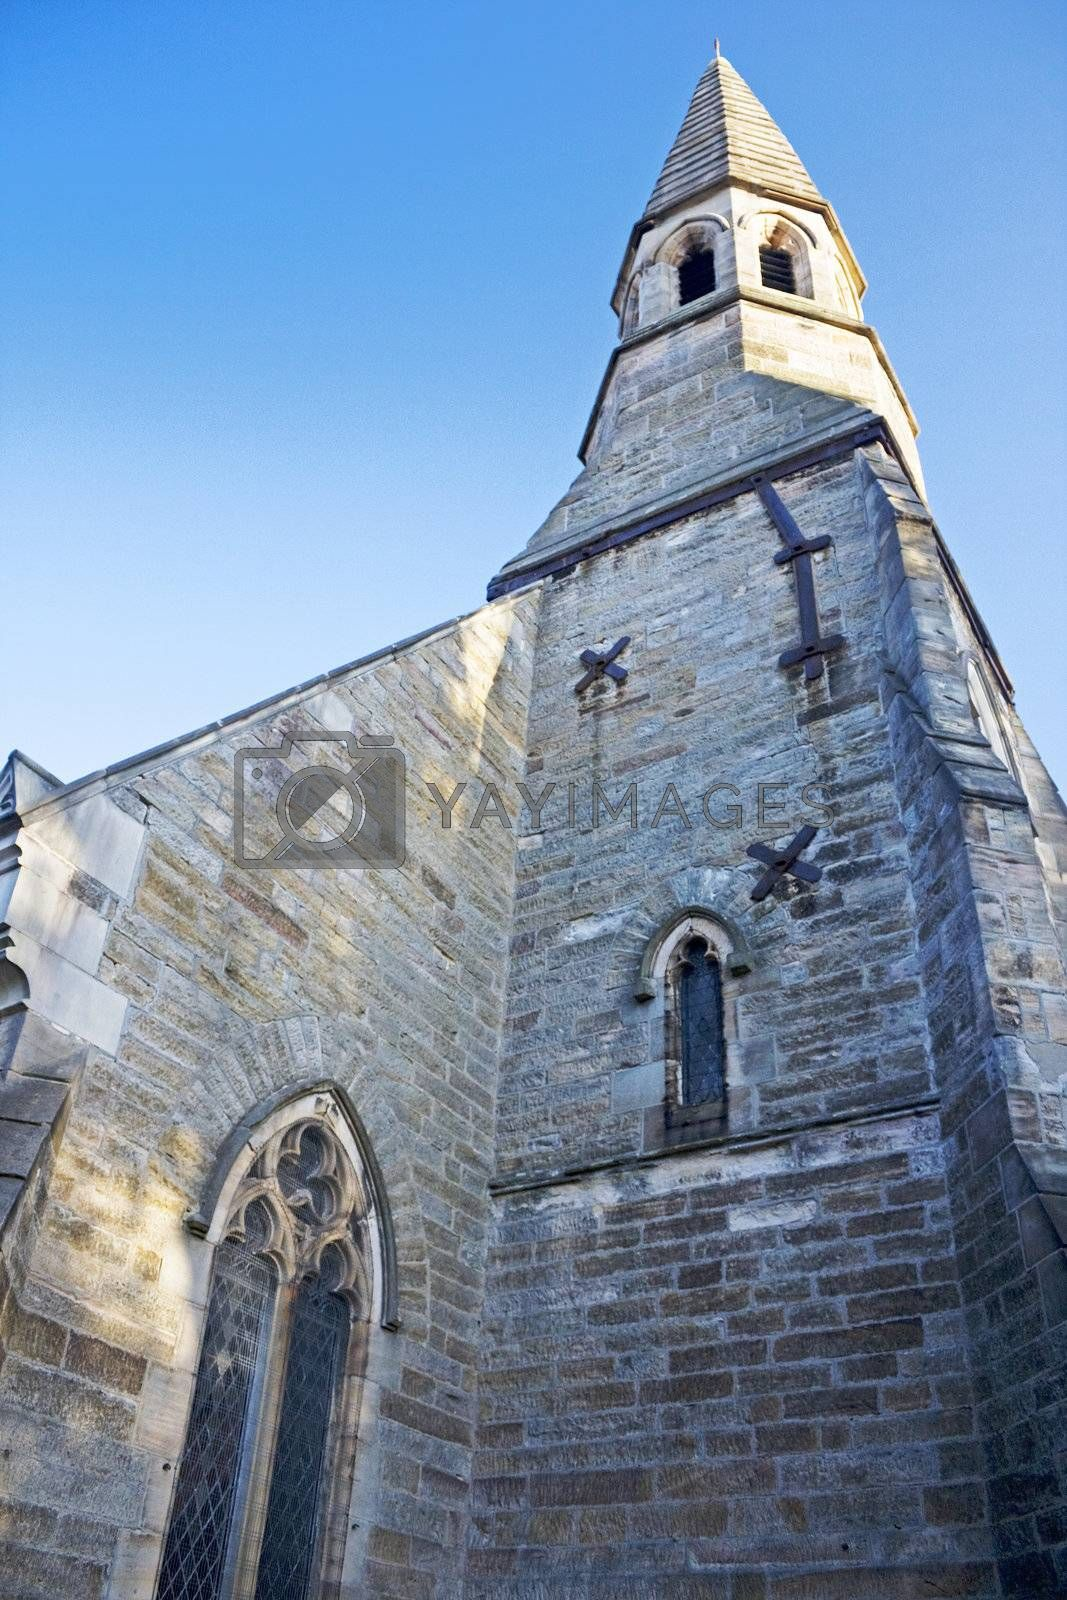 Royalty free image of St. Andrew's Congregational Church, Sydney by shariffc